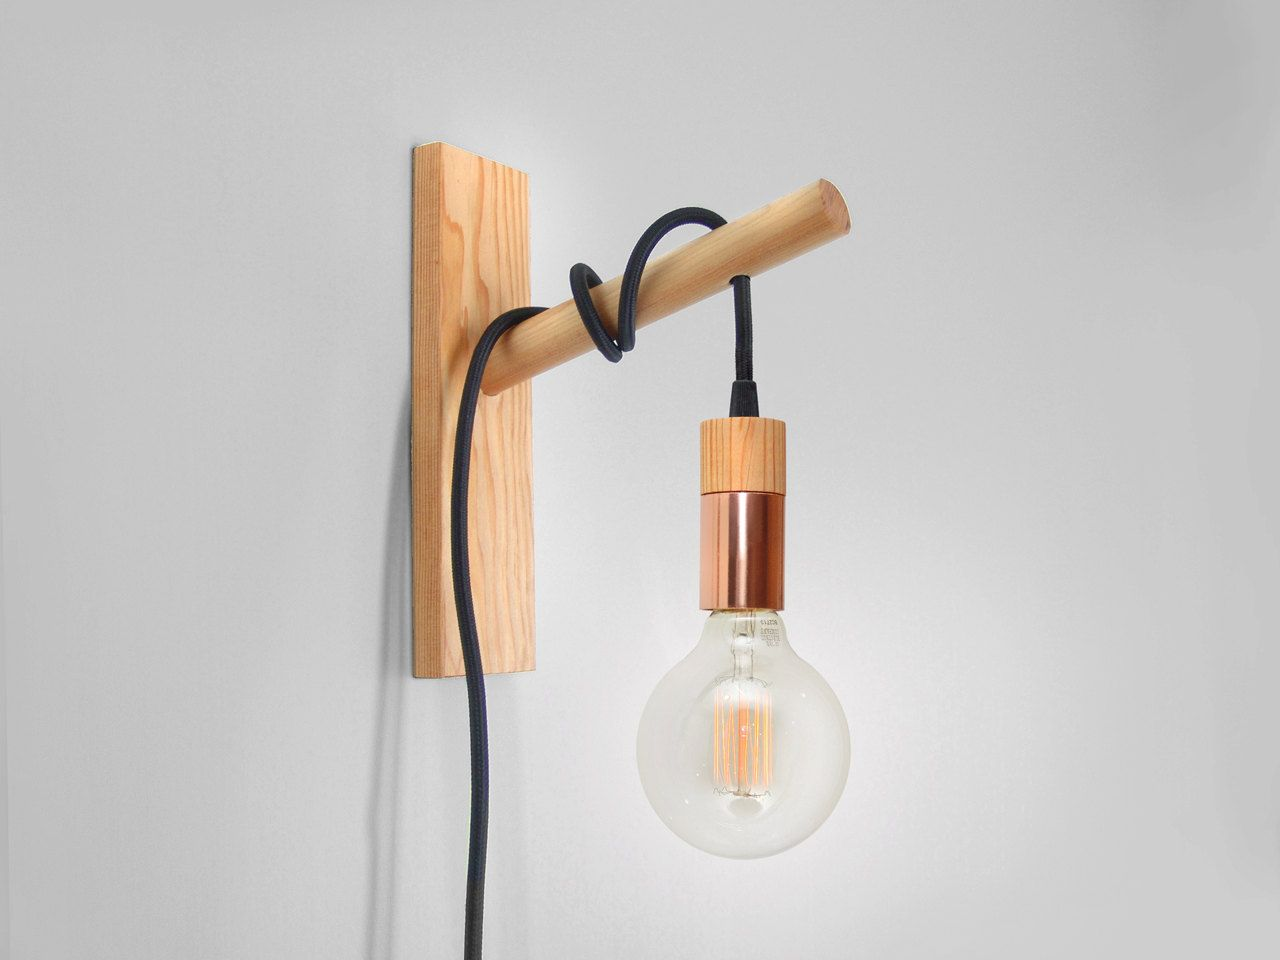 Copa wall sconce handcrafted pendant light made of copper and wood